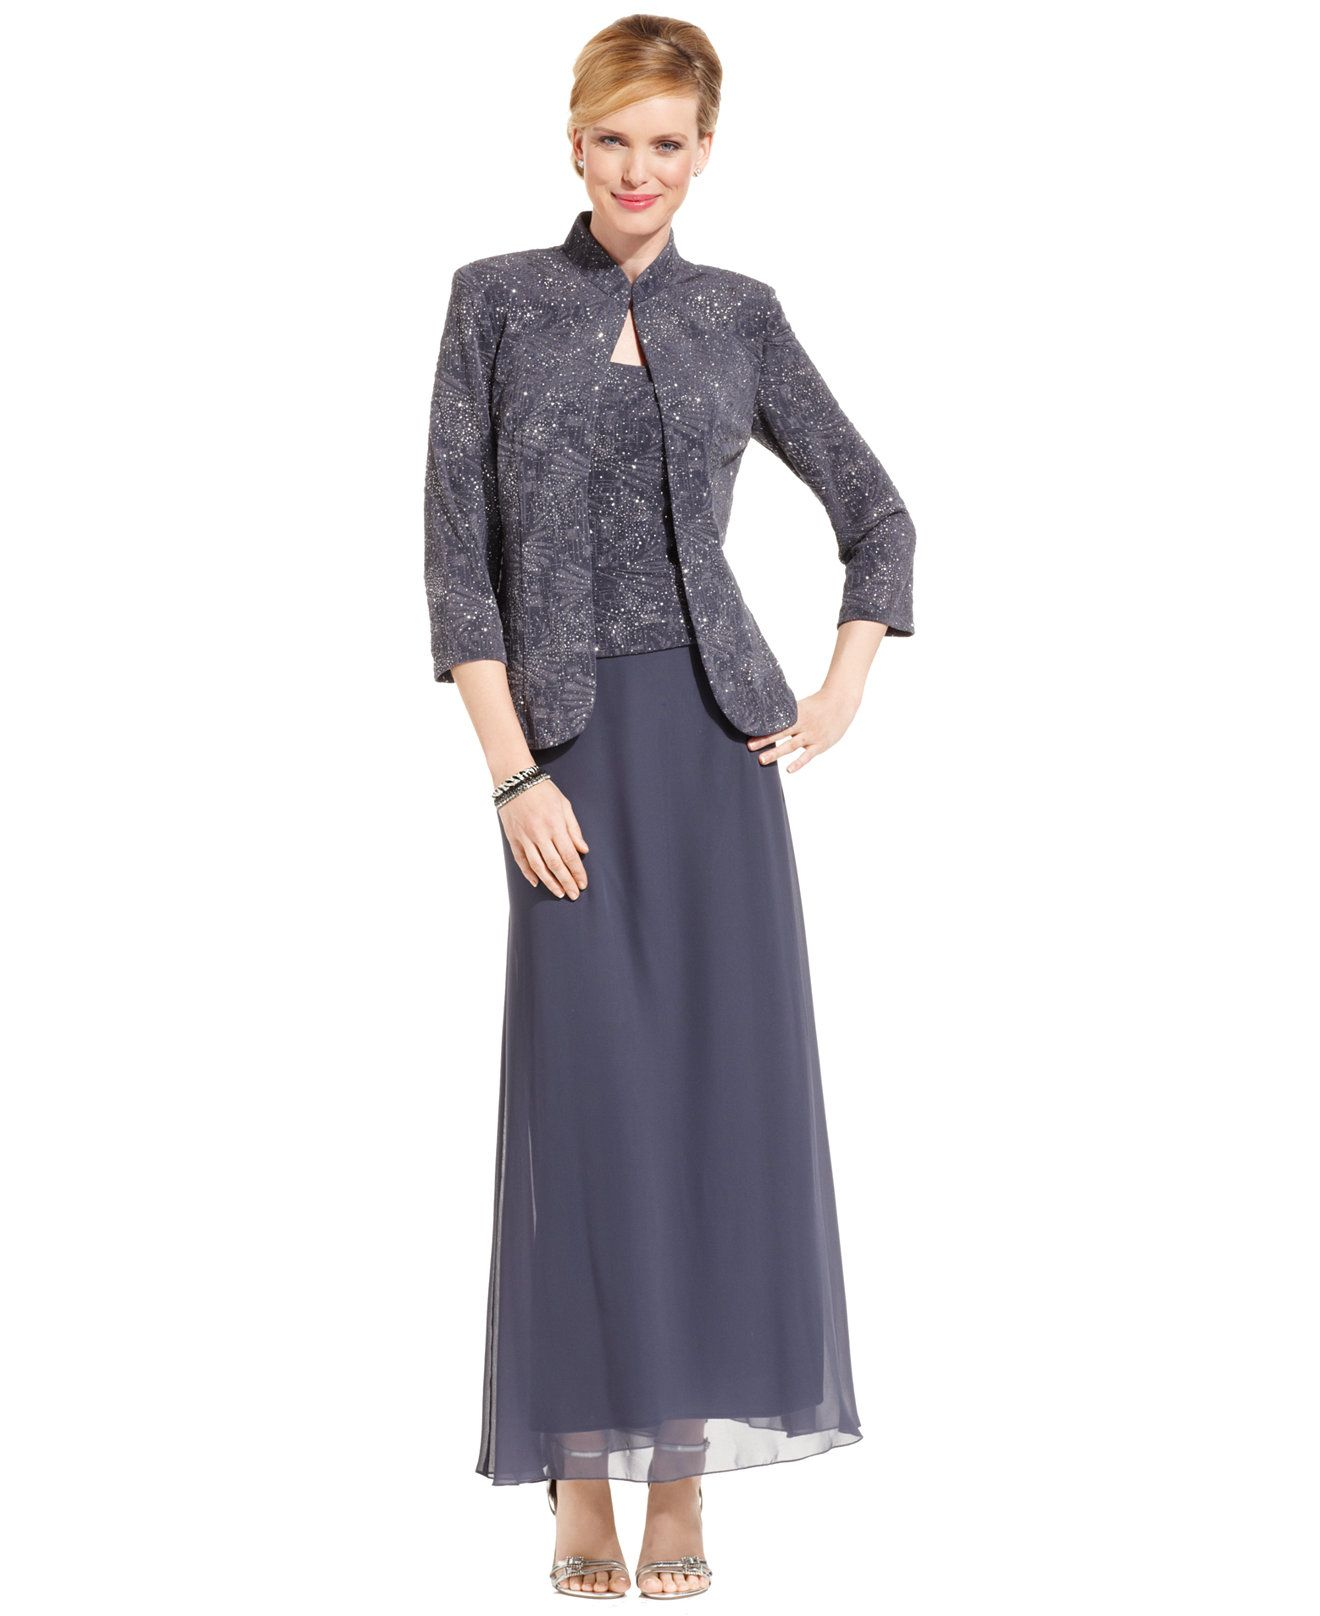 Alex evenings sleeveless jacquard sparkle gown and jacket dresses